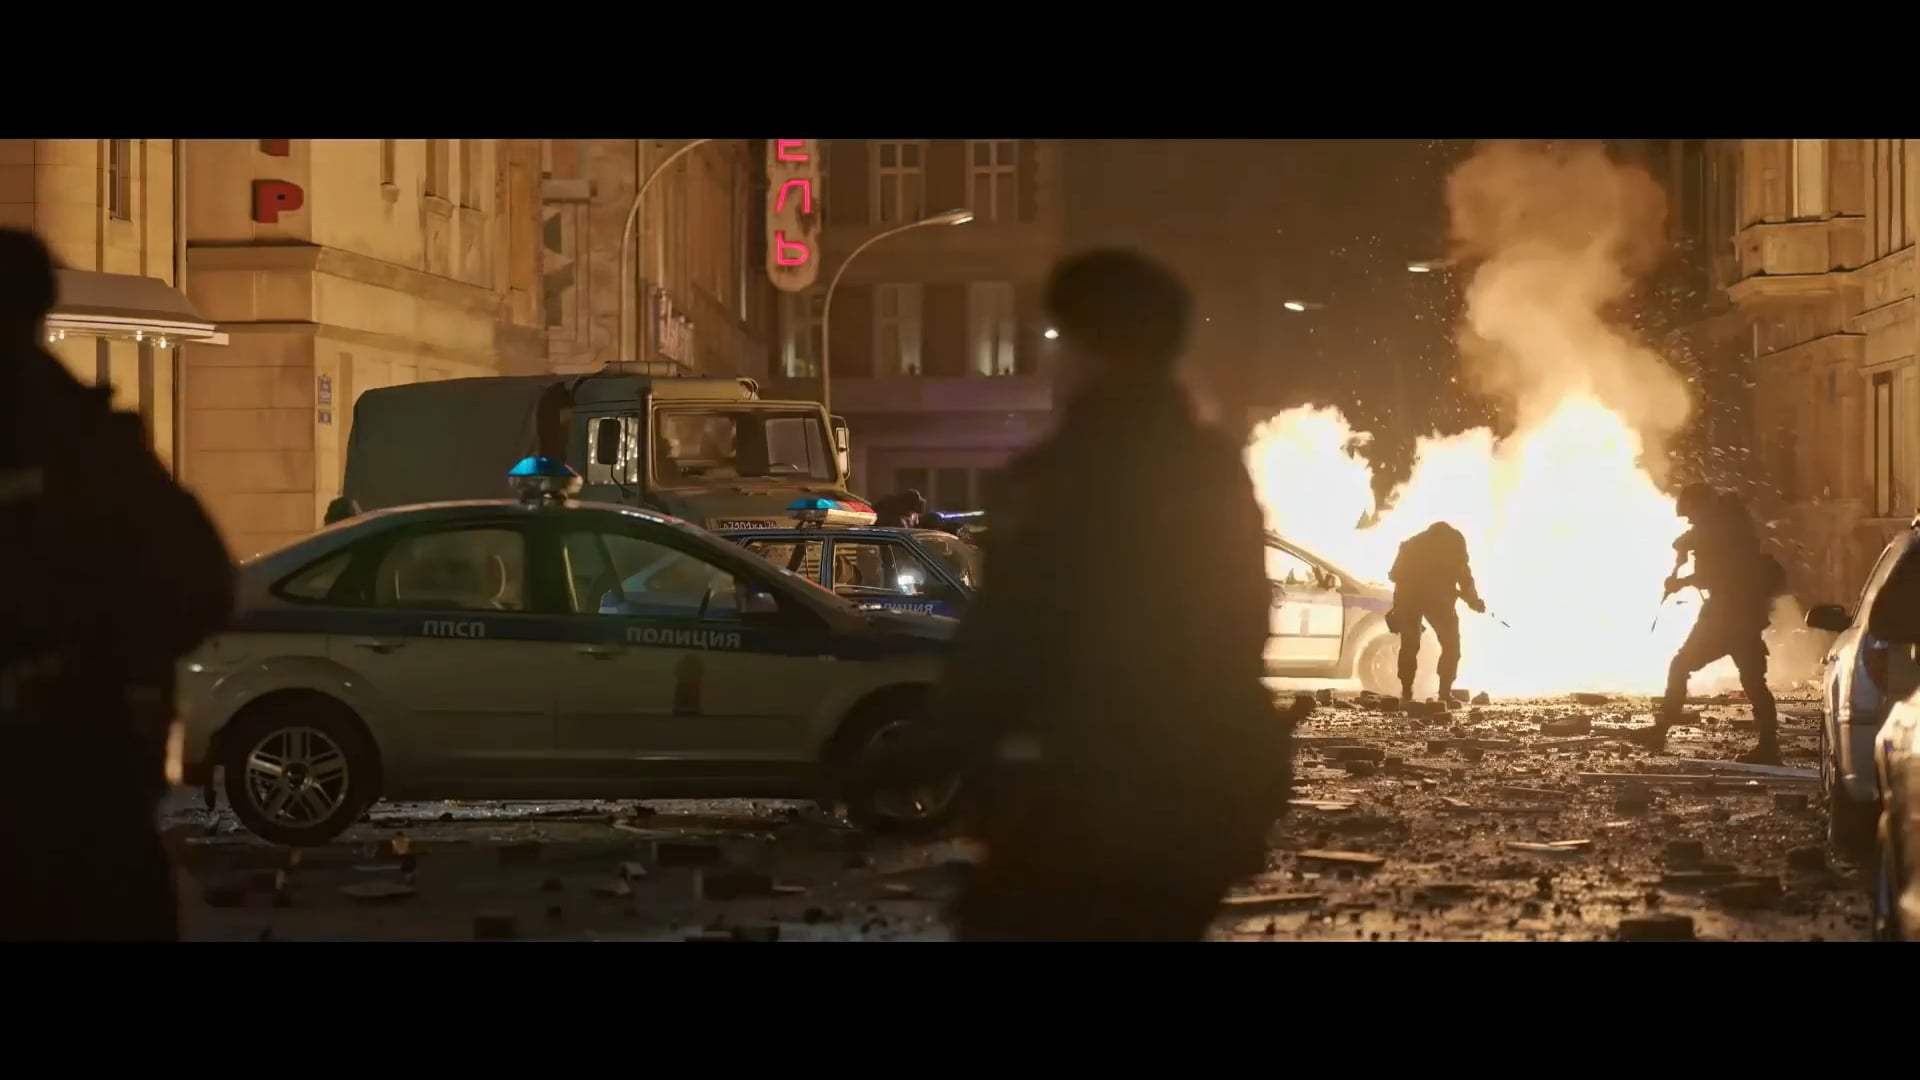 Tom Clancy's Without Remorse Feature Trailer (2021) Screen Capture #4